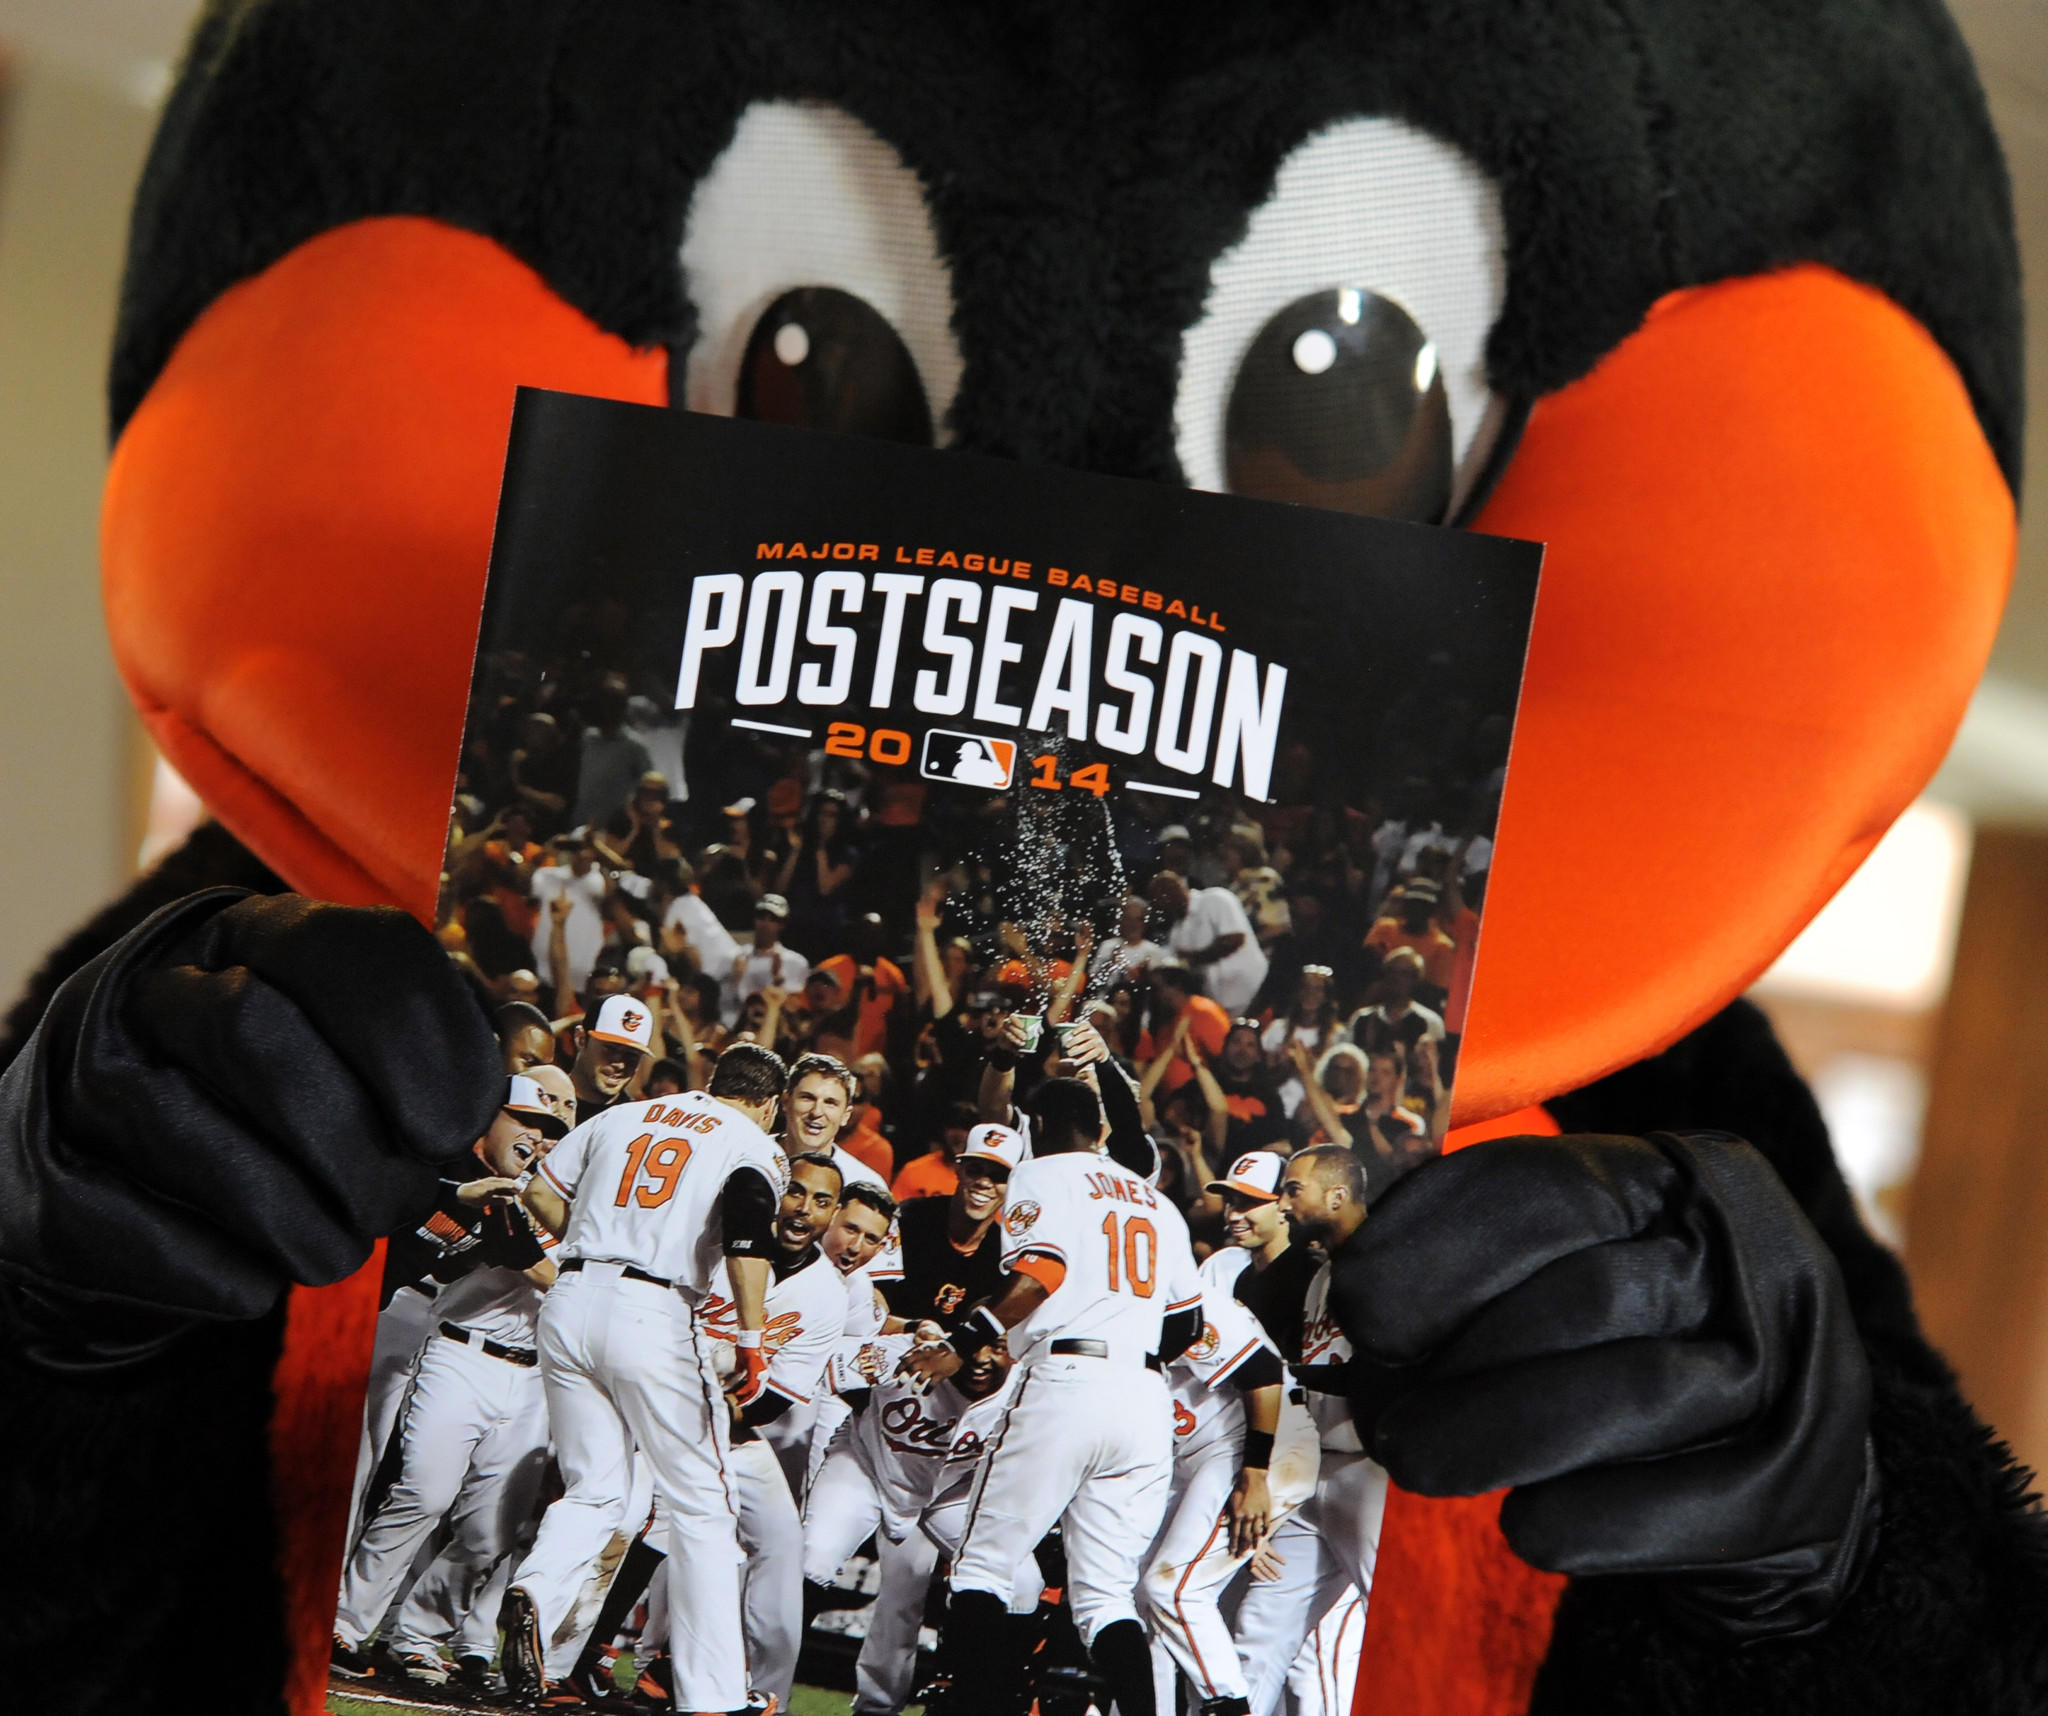 The Oriole Bird holds a packet for 2014 playoff tickets. The Orioles are sending playoff ticket invoices to season-ticket holders for a third straight season.